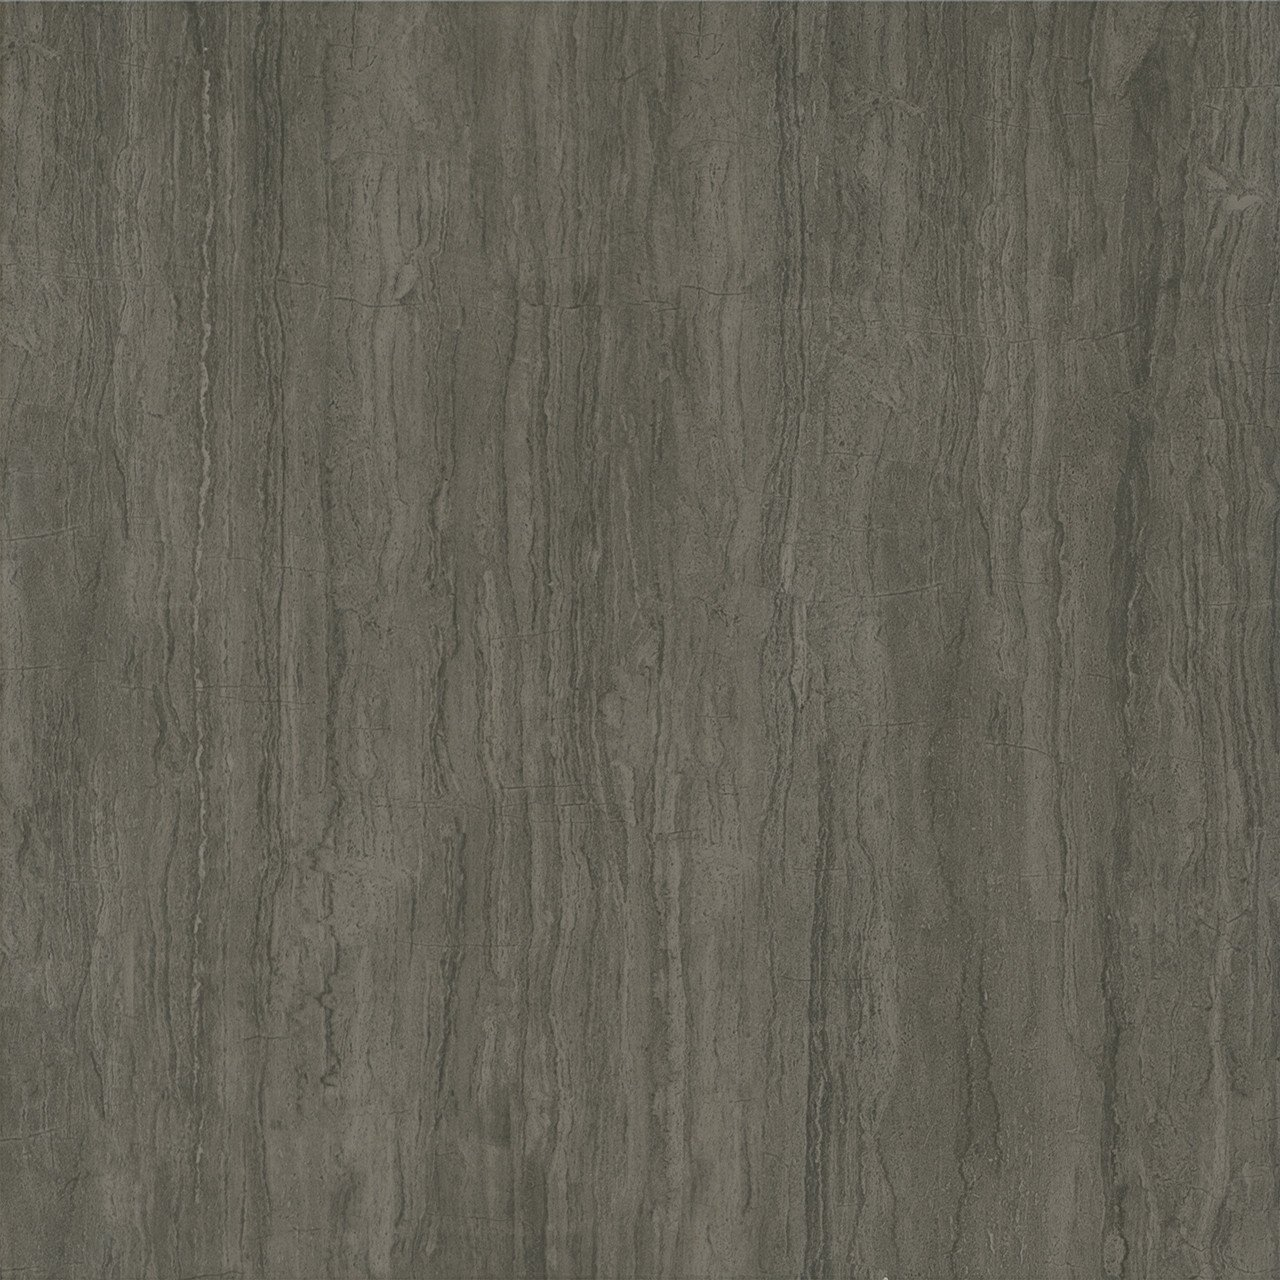 Serpentine Dark 45cm x 45cm Porcelain Tile